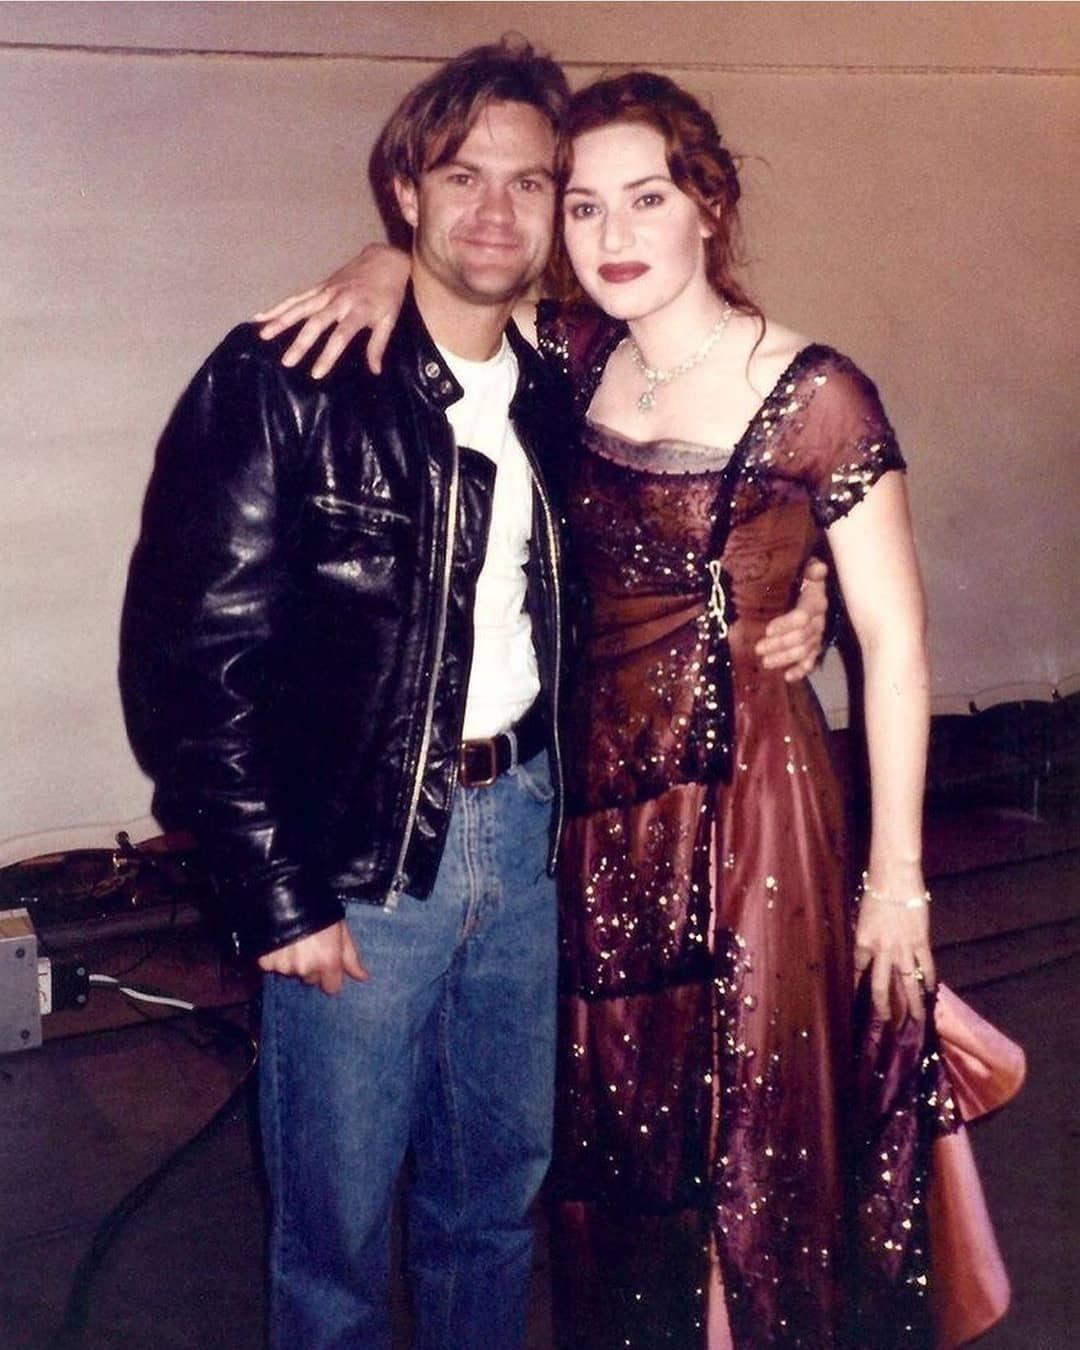 Kate Winslet And Leonardo Dicaprio S Stunt Double Behind The Scenes Of Titanic Follow Filmsforyears For More Kate Winslet Titanic Leo And Kate